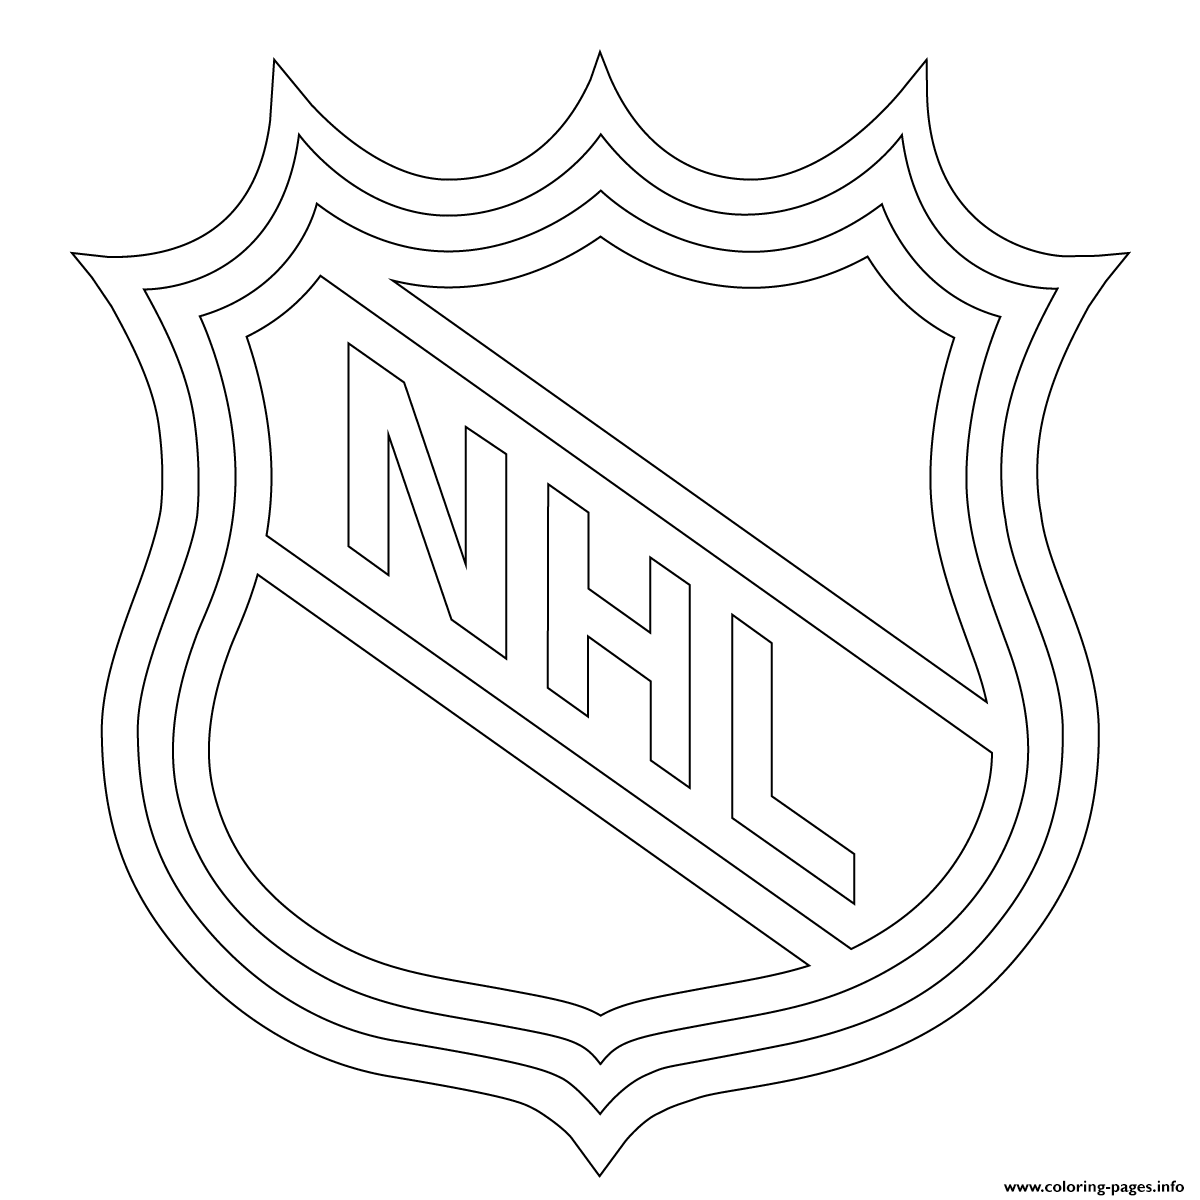 coloring pages sports logos boston bruins logo nhl hockey sport coloring pages printable pages sports coloring logos